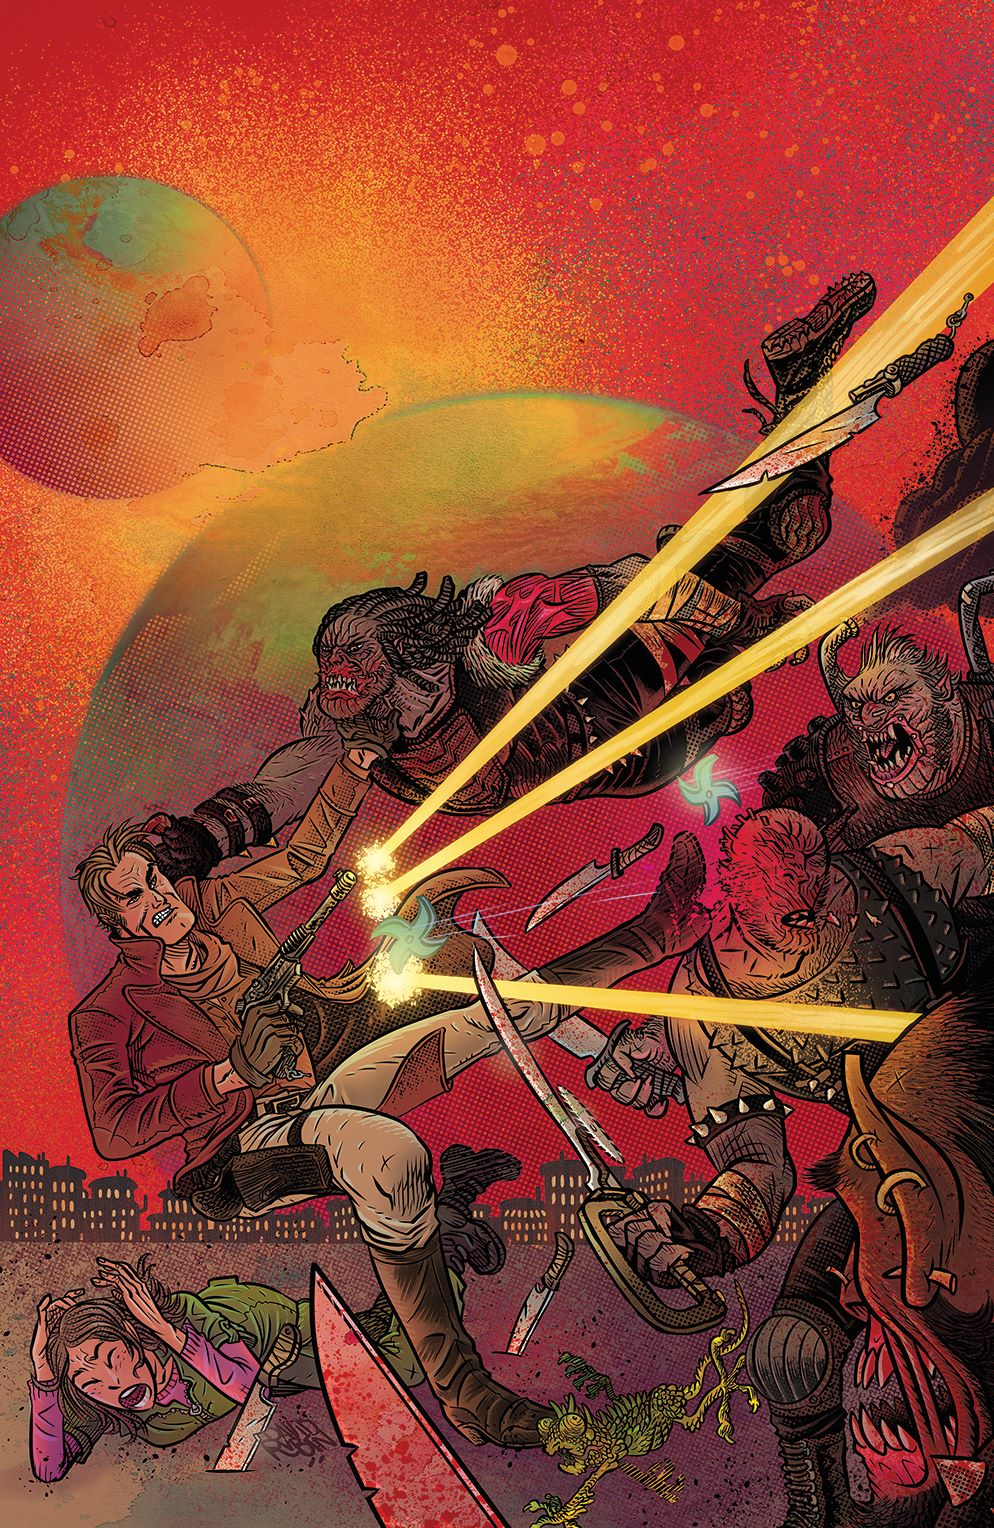 Firefly_028_Cover_F_Unlockable ComicList Previews: FIREFLY #28